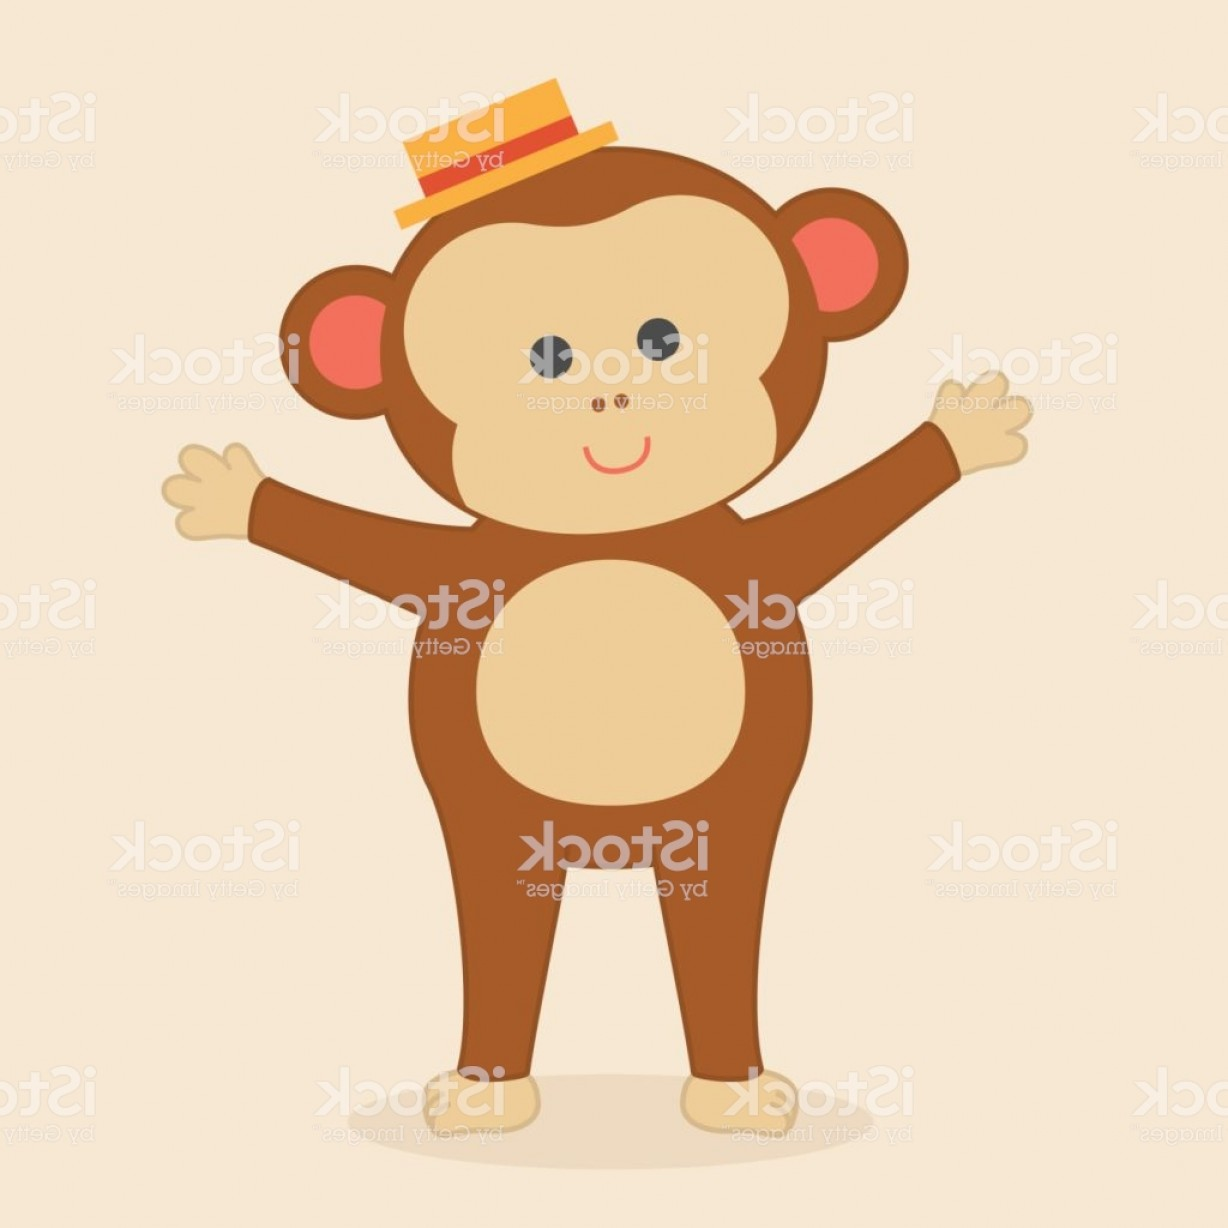 Sitting Monkey Vector Baby Shower: Cute Baby Monkey With Arms Ready To Give A Hug Gm